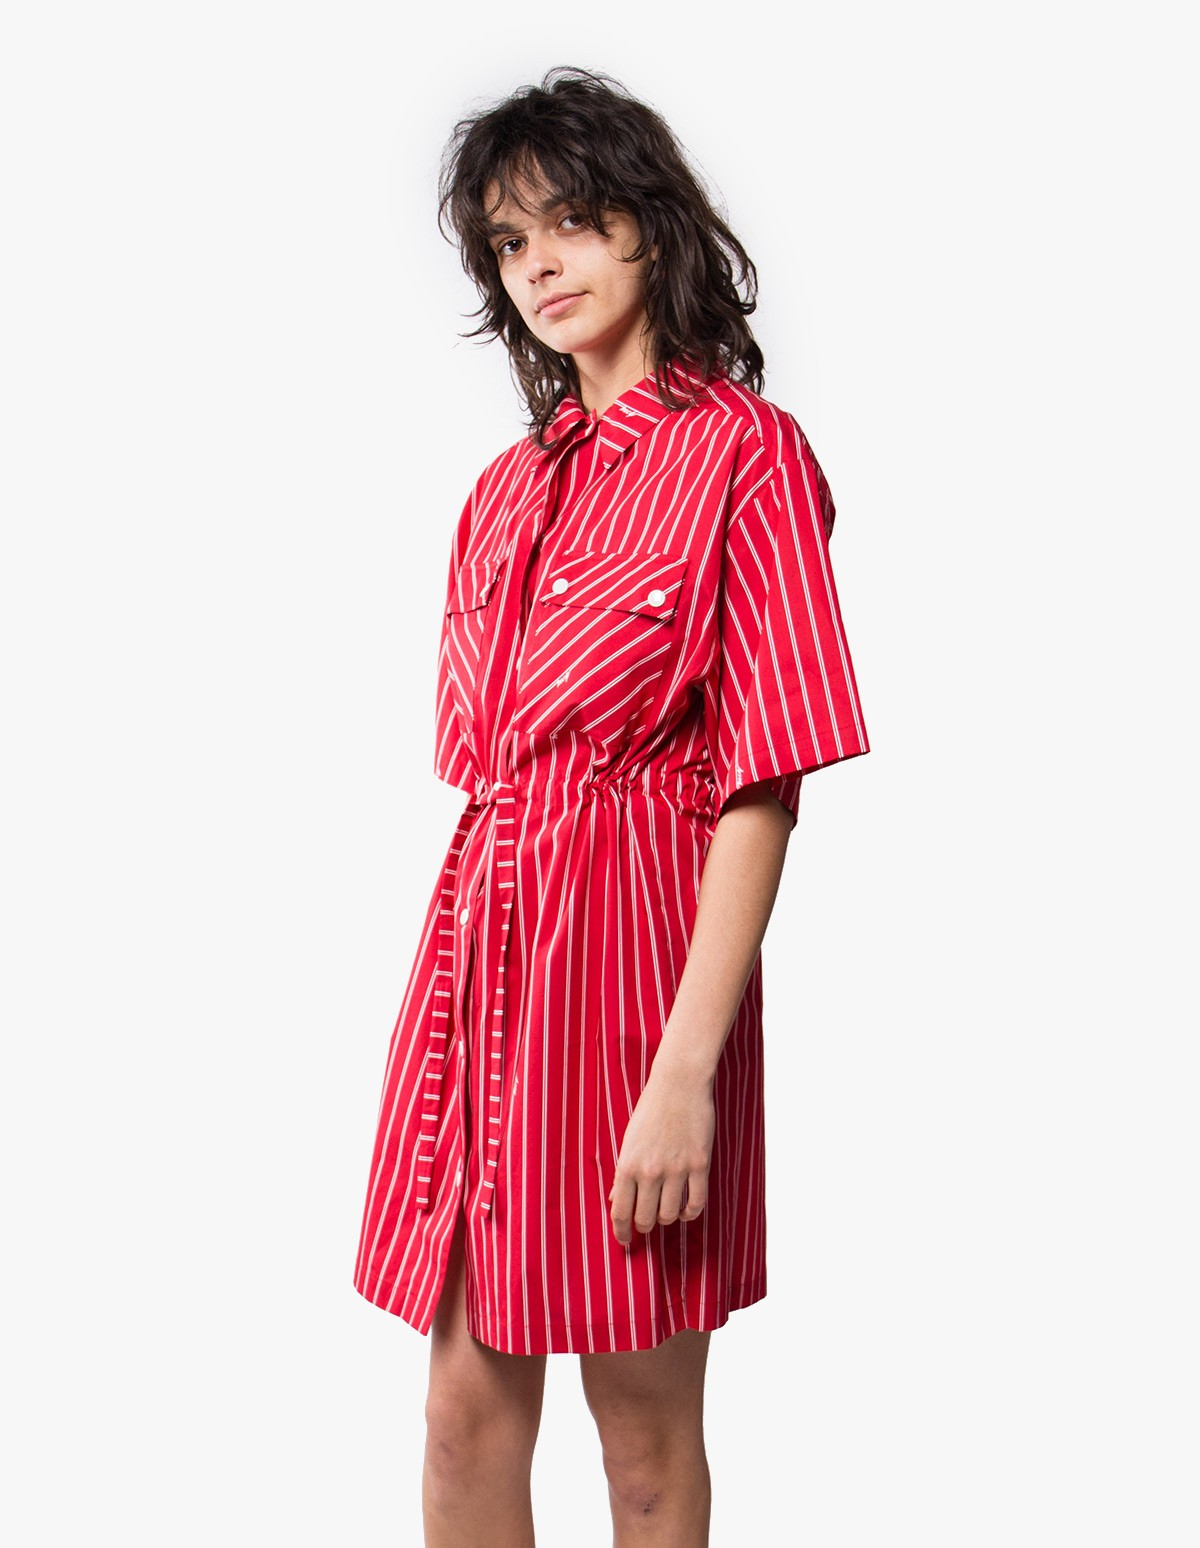 McQ Alexander McQueen Press Stud Utility Dress in Cadillac Red